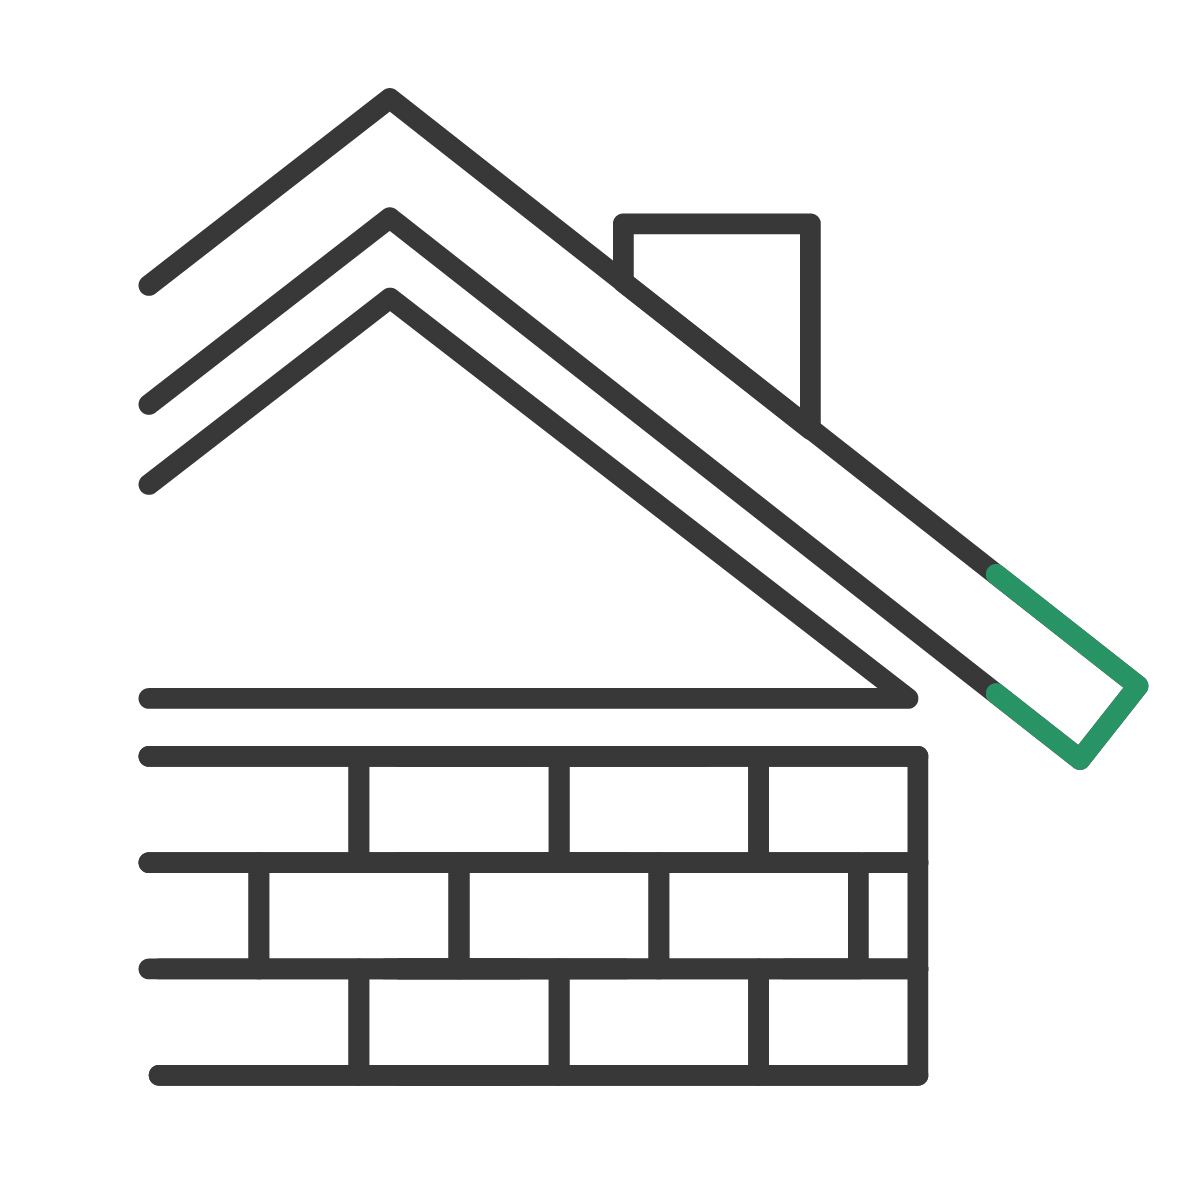 What Are The Different Parts Of A Roof Called Roof